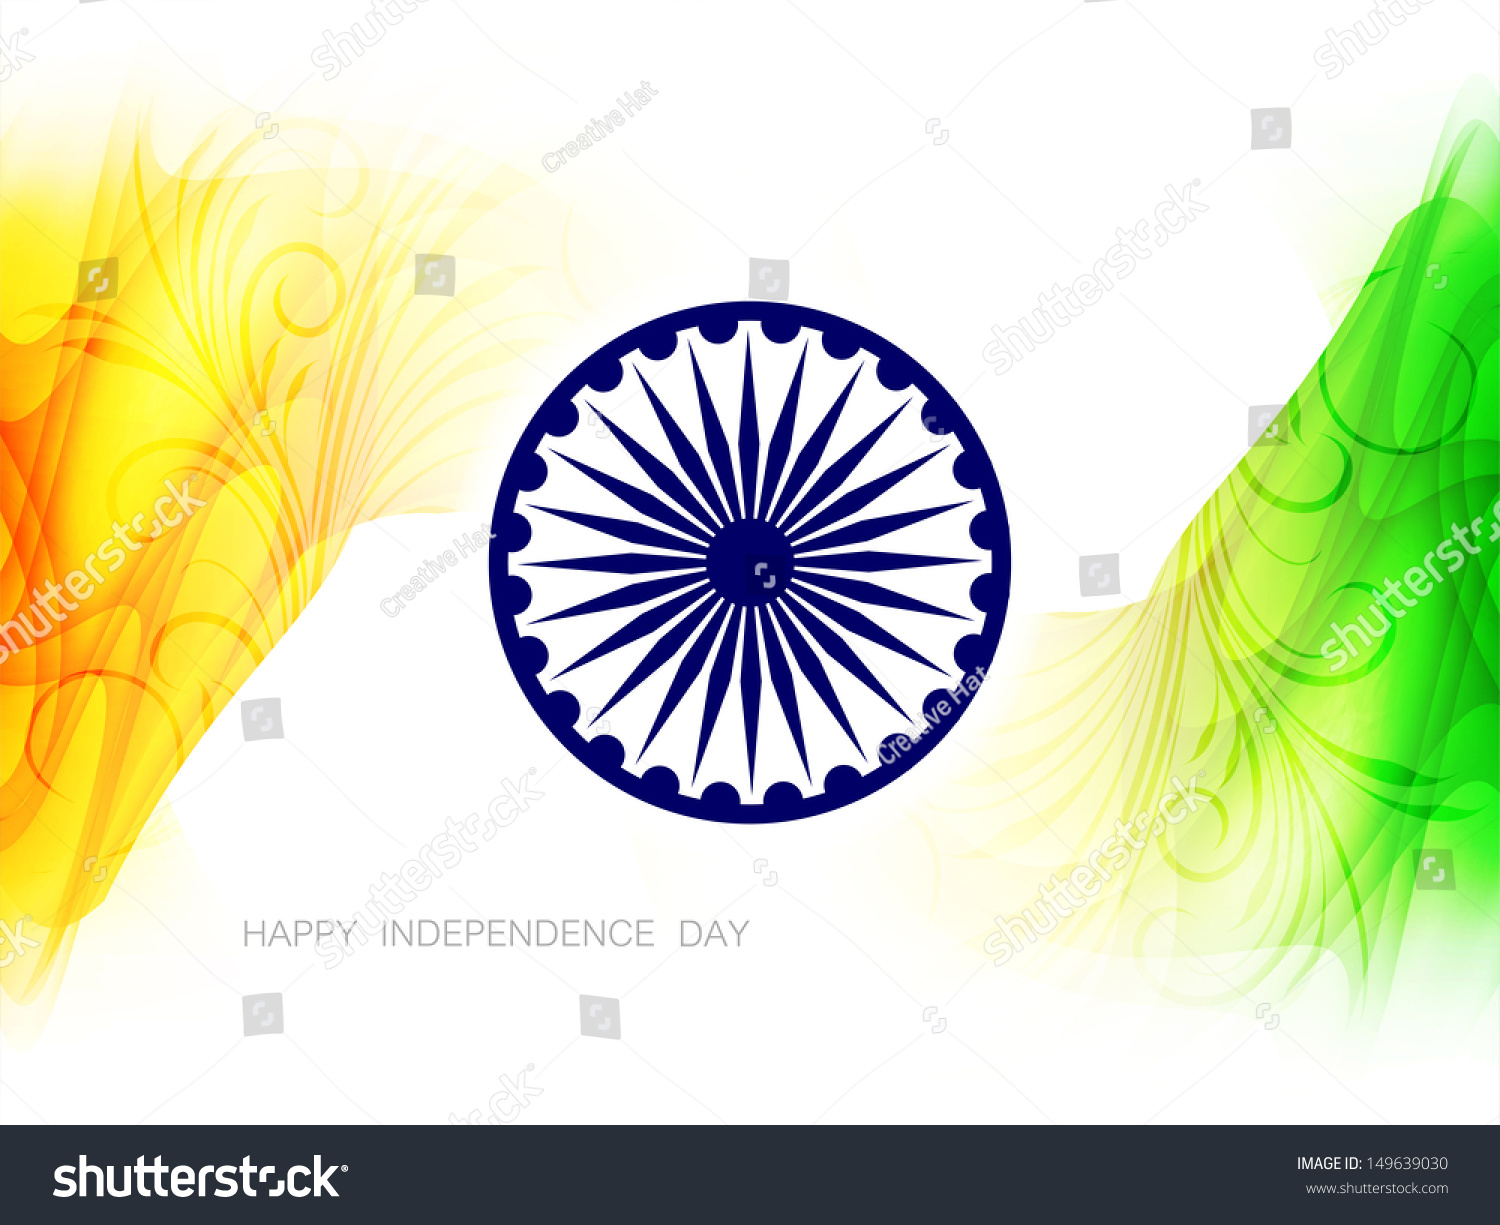 Indian Flag Theme: Beautiful Indian Flag Theme Background Design Stock Vector